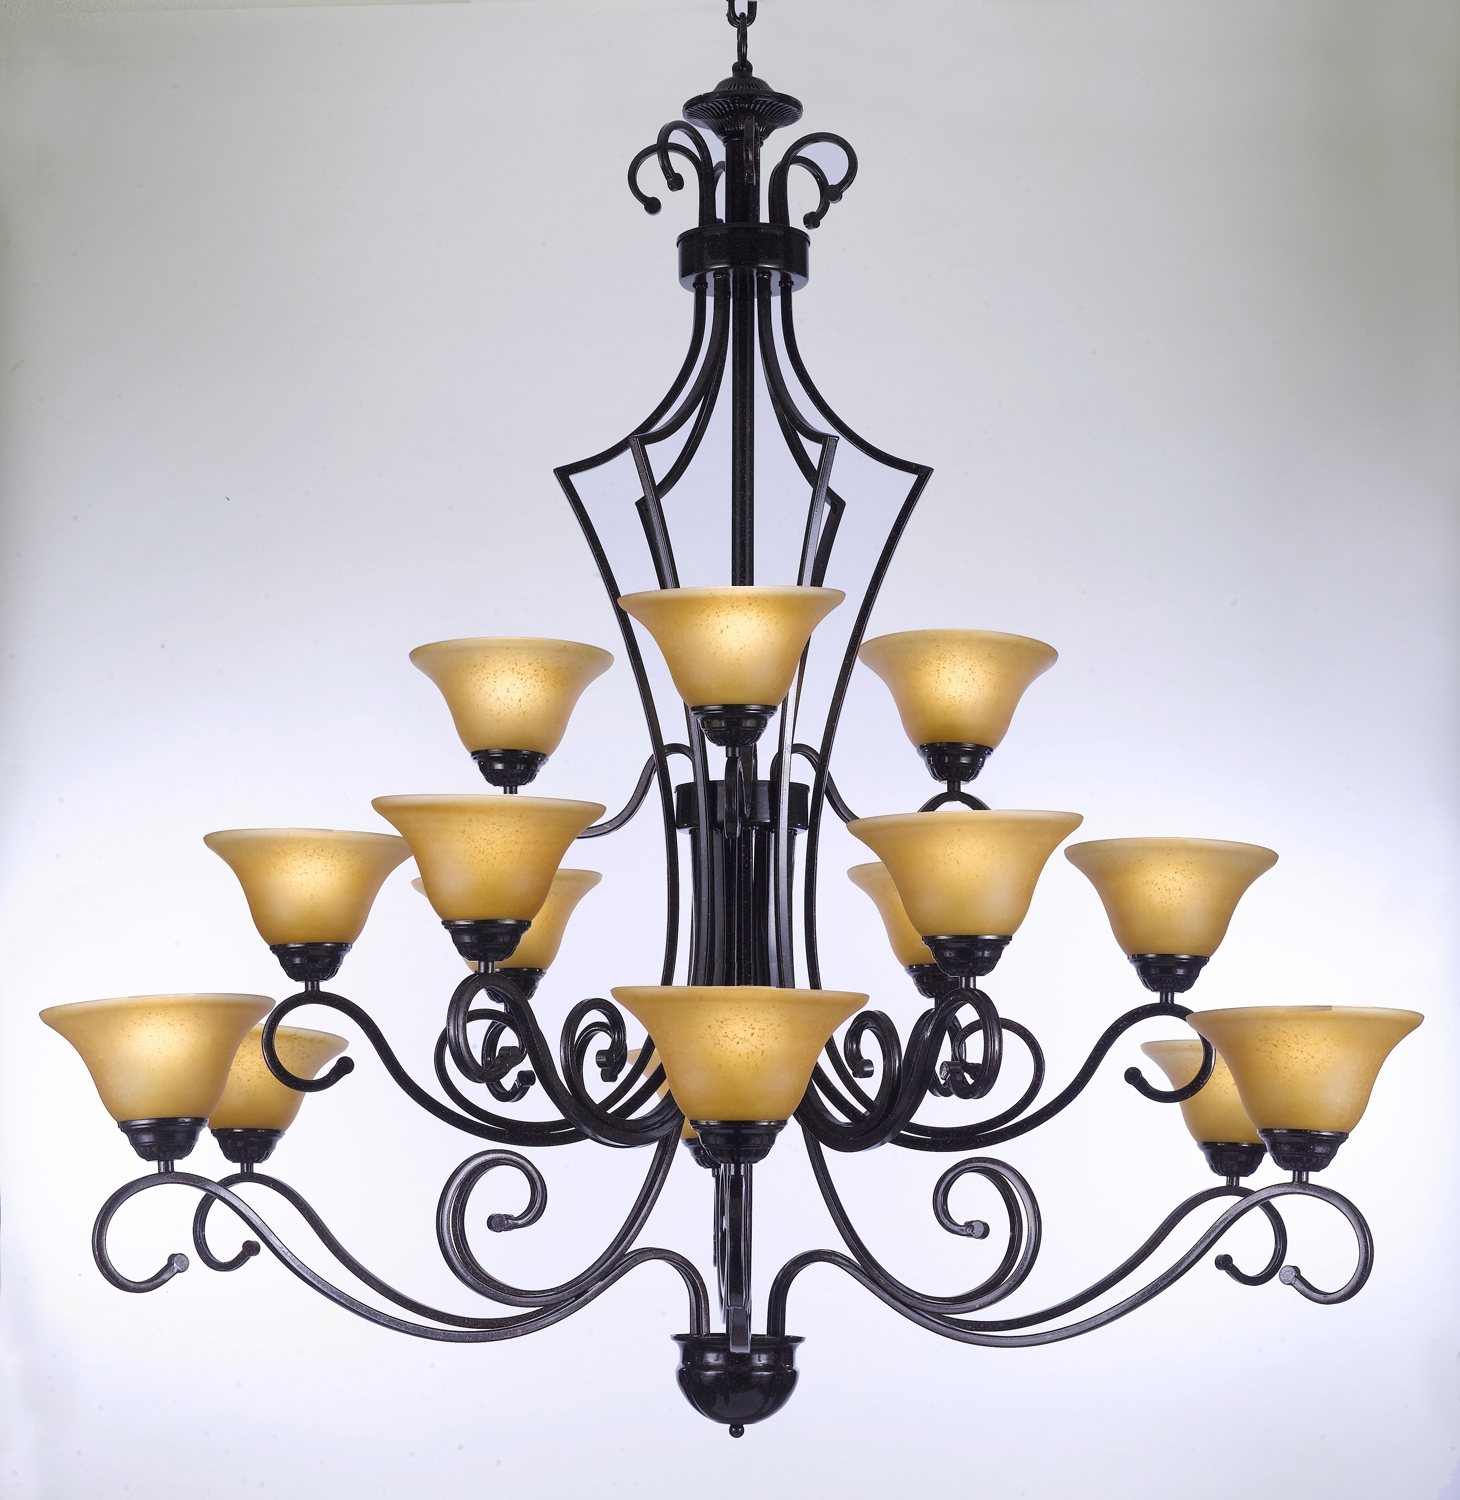 F84 45115 Gallery Wrought Without Crystal Wrought Iron Chandelier Intended For Cast Iron Chandelier (Image 9 of 15)